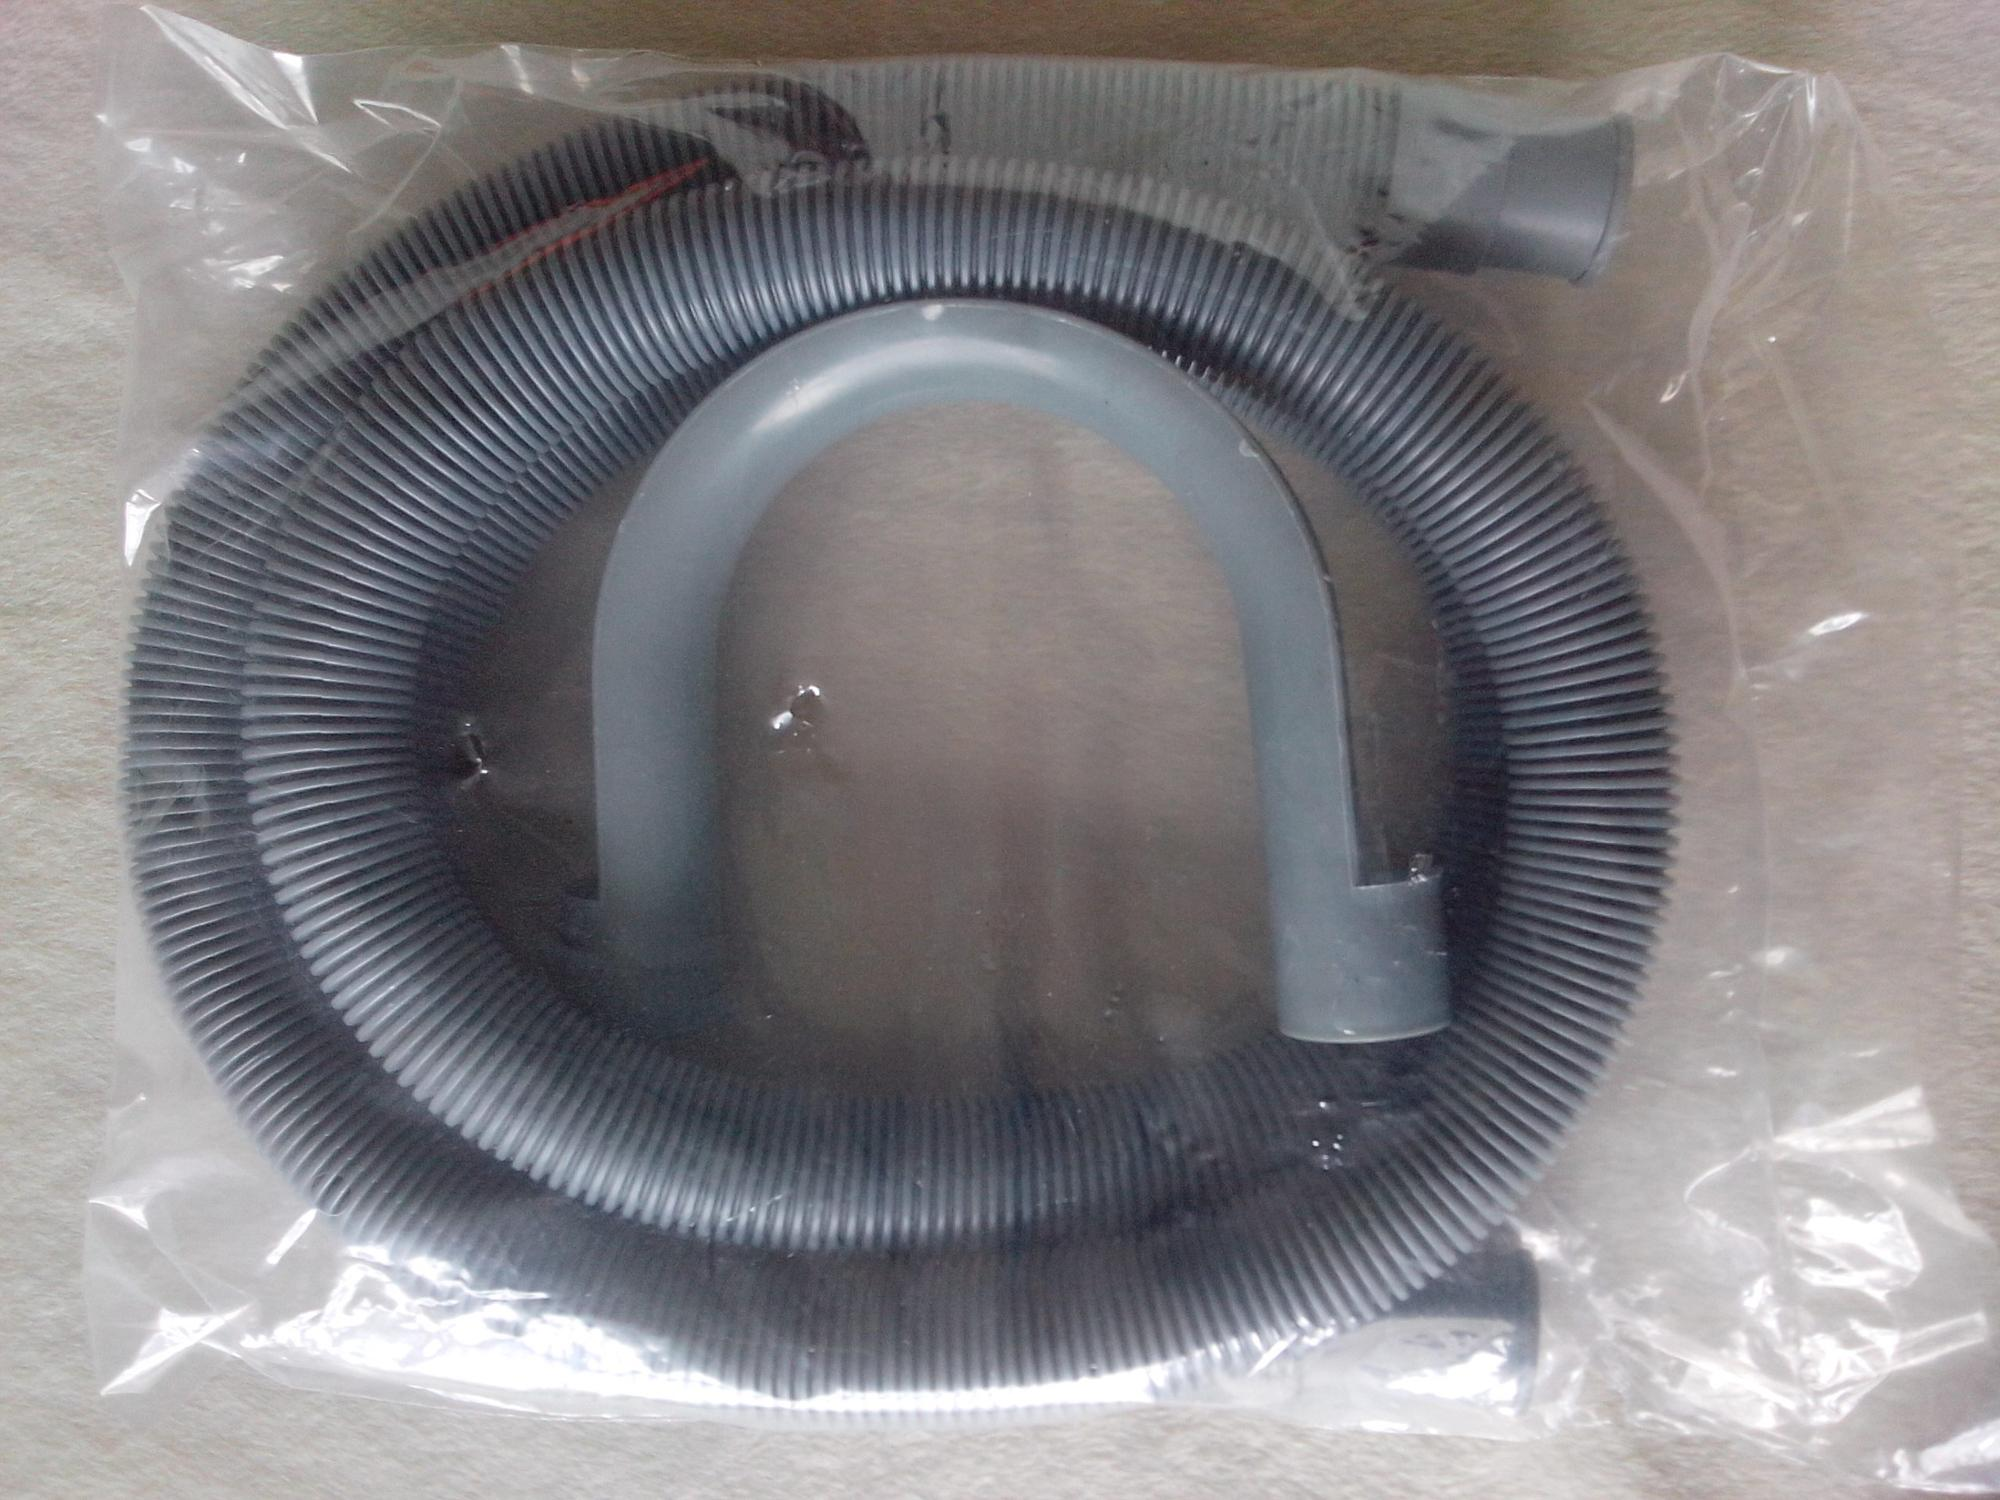 washing machine hose, washing machine parts, ifb washing machine spare parts